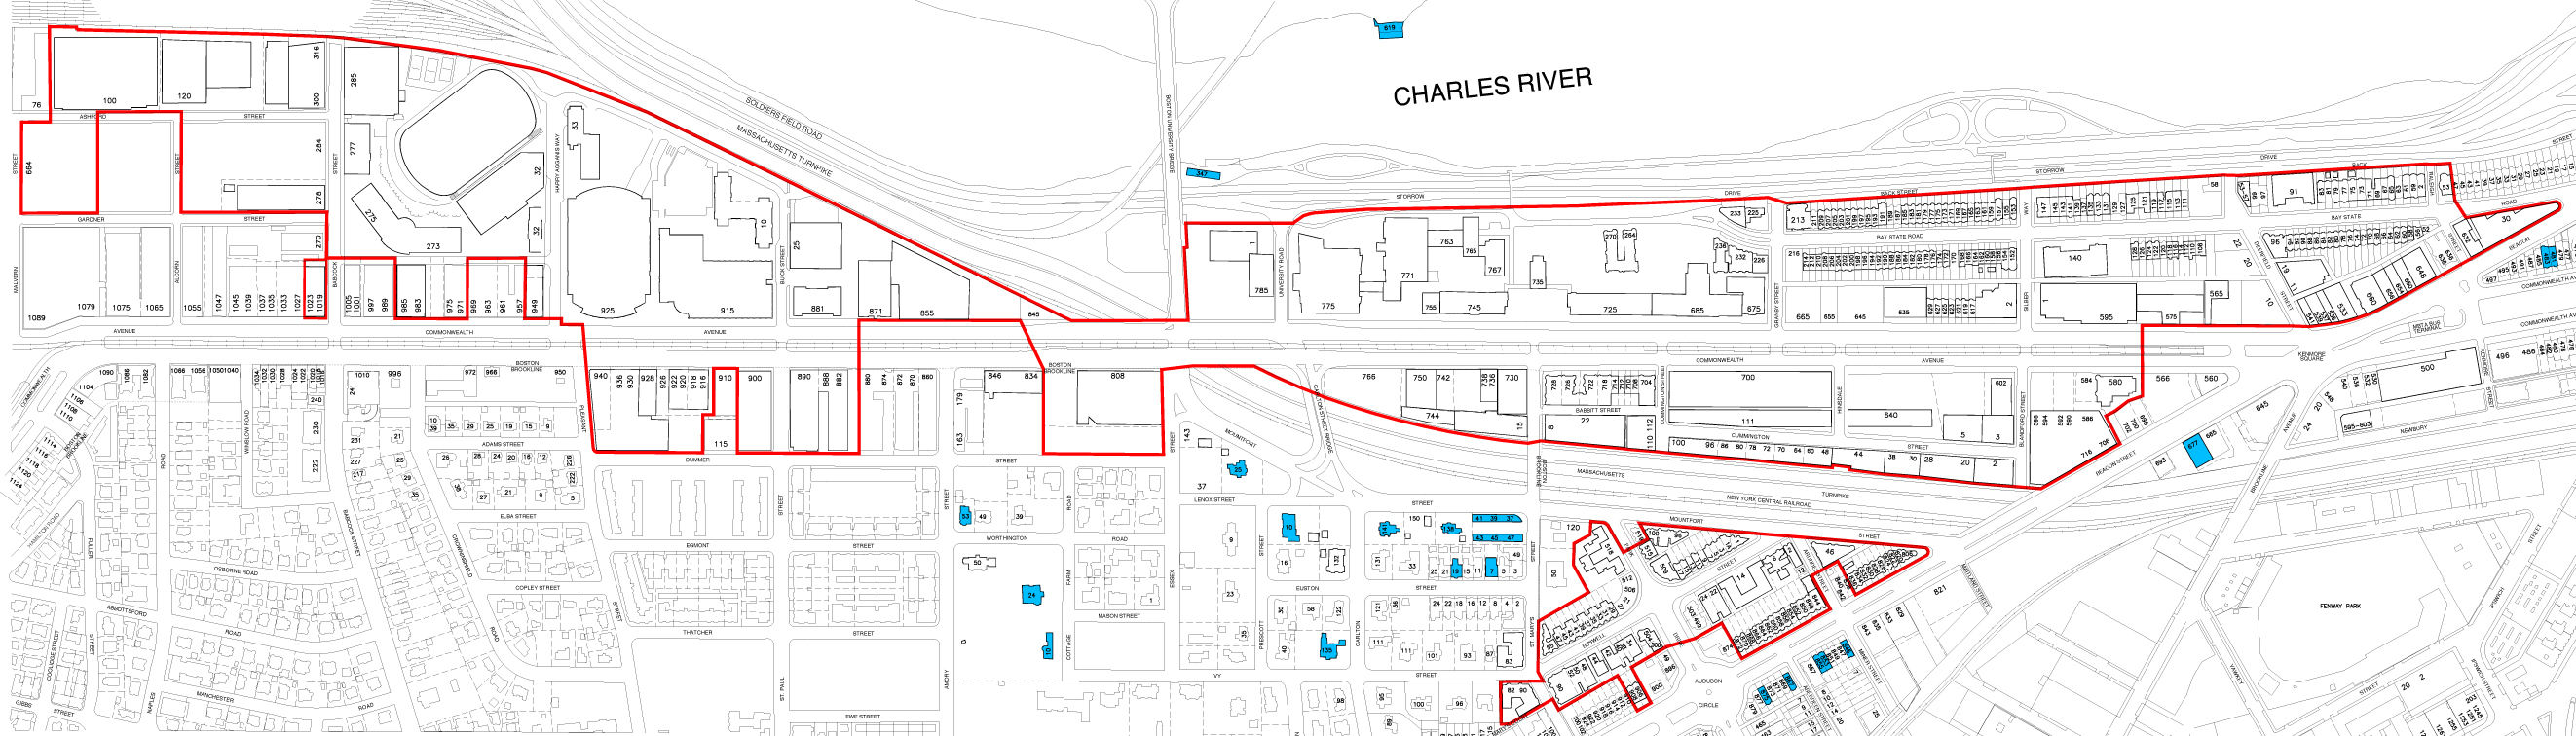 boston university charles river campus map Alcohol Arrests Summonses Nearly Doubled In 2011 Bu Today boston university charles river campus map